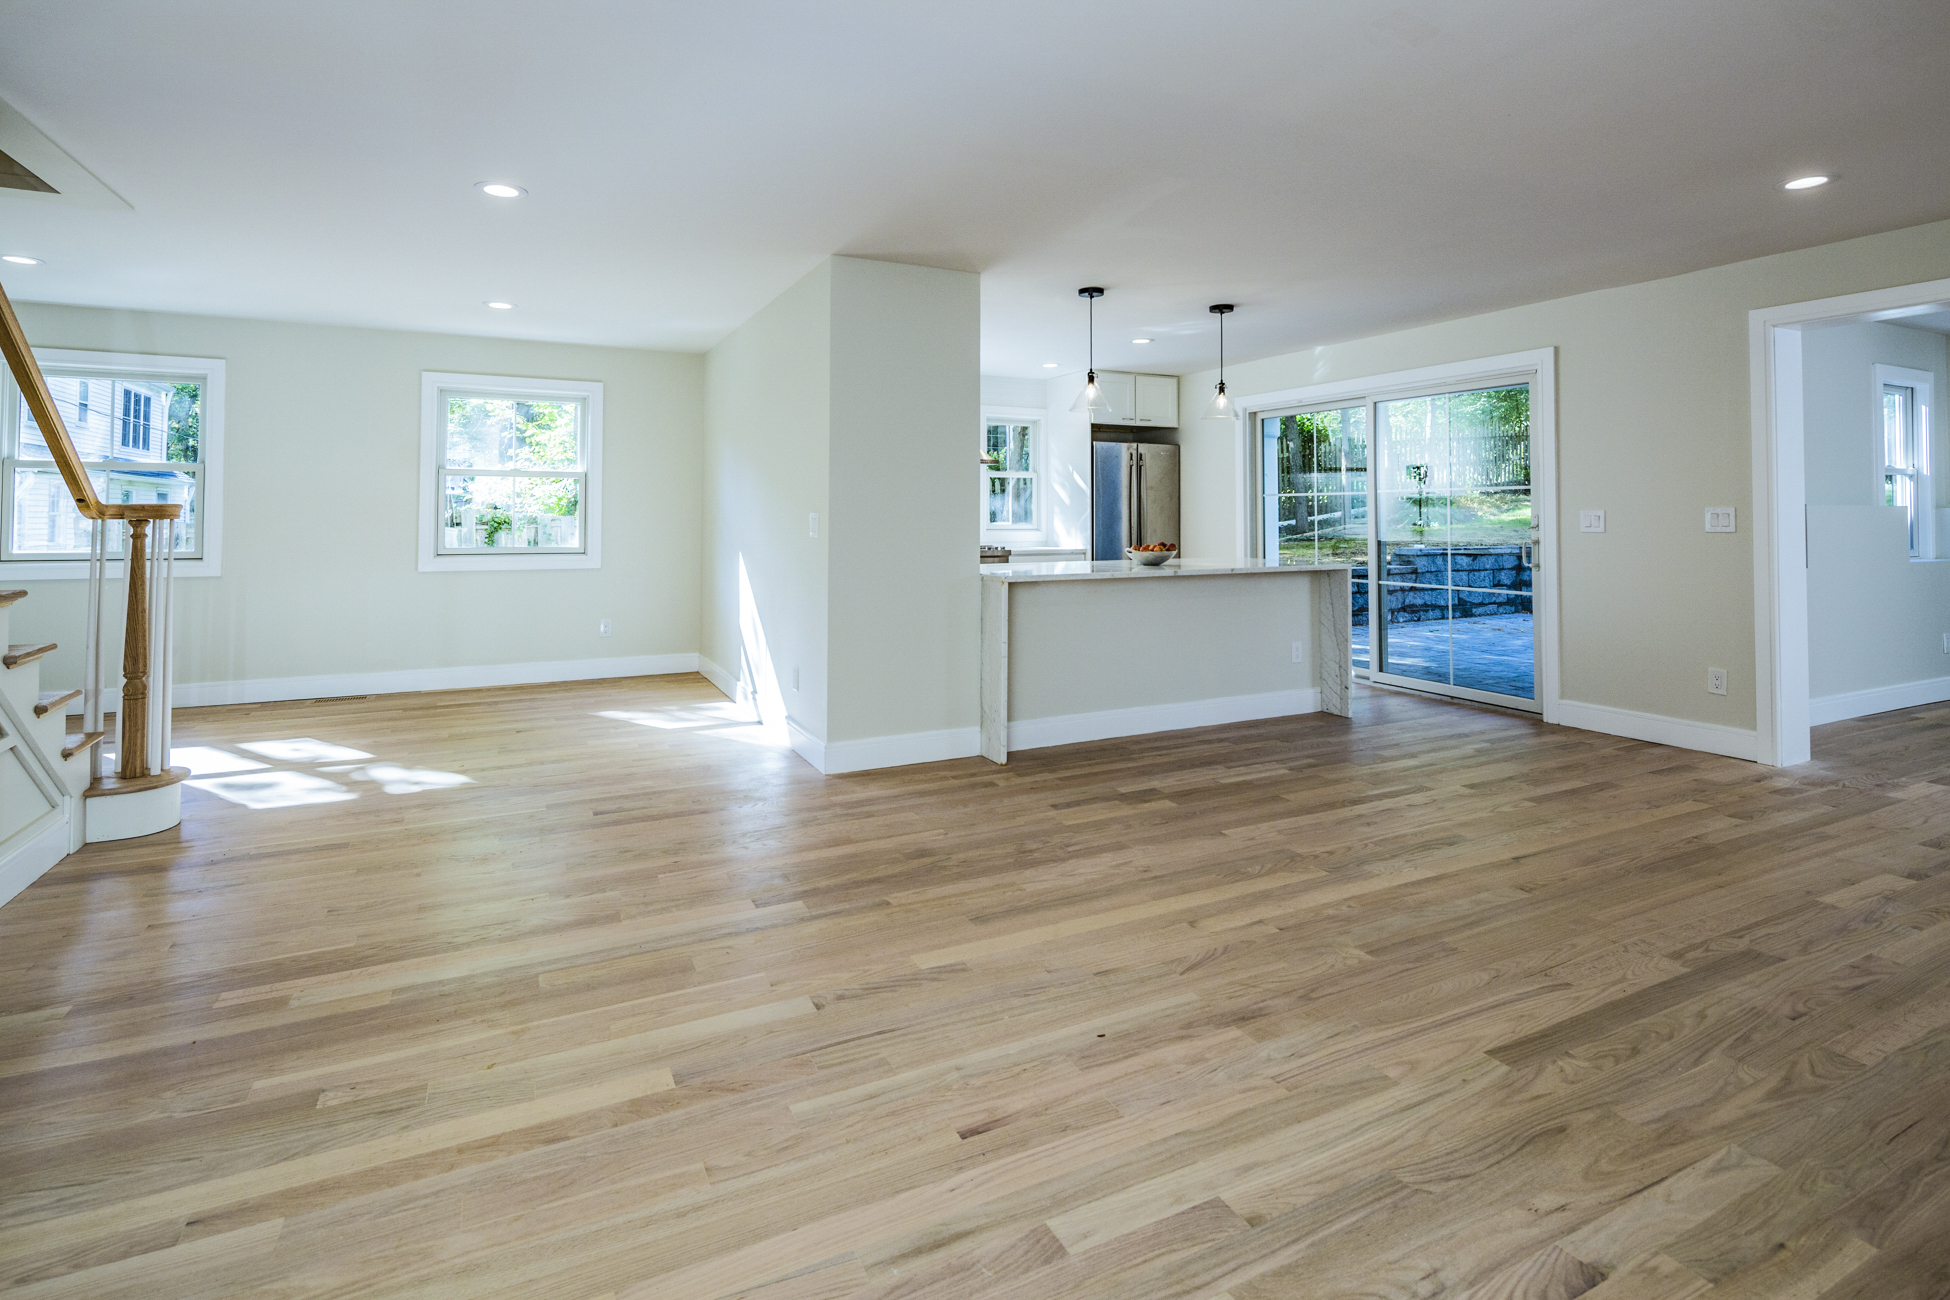 Additional photo for property listing at Beautiful New Construction Close to Downtown 12 Rollingmead Street Princeton, Nueva Jersey 08540 Estados Unidos